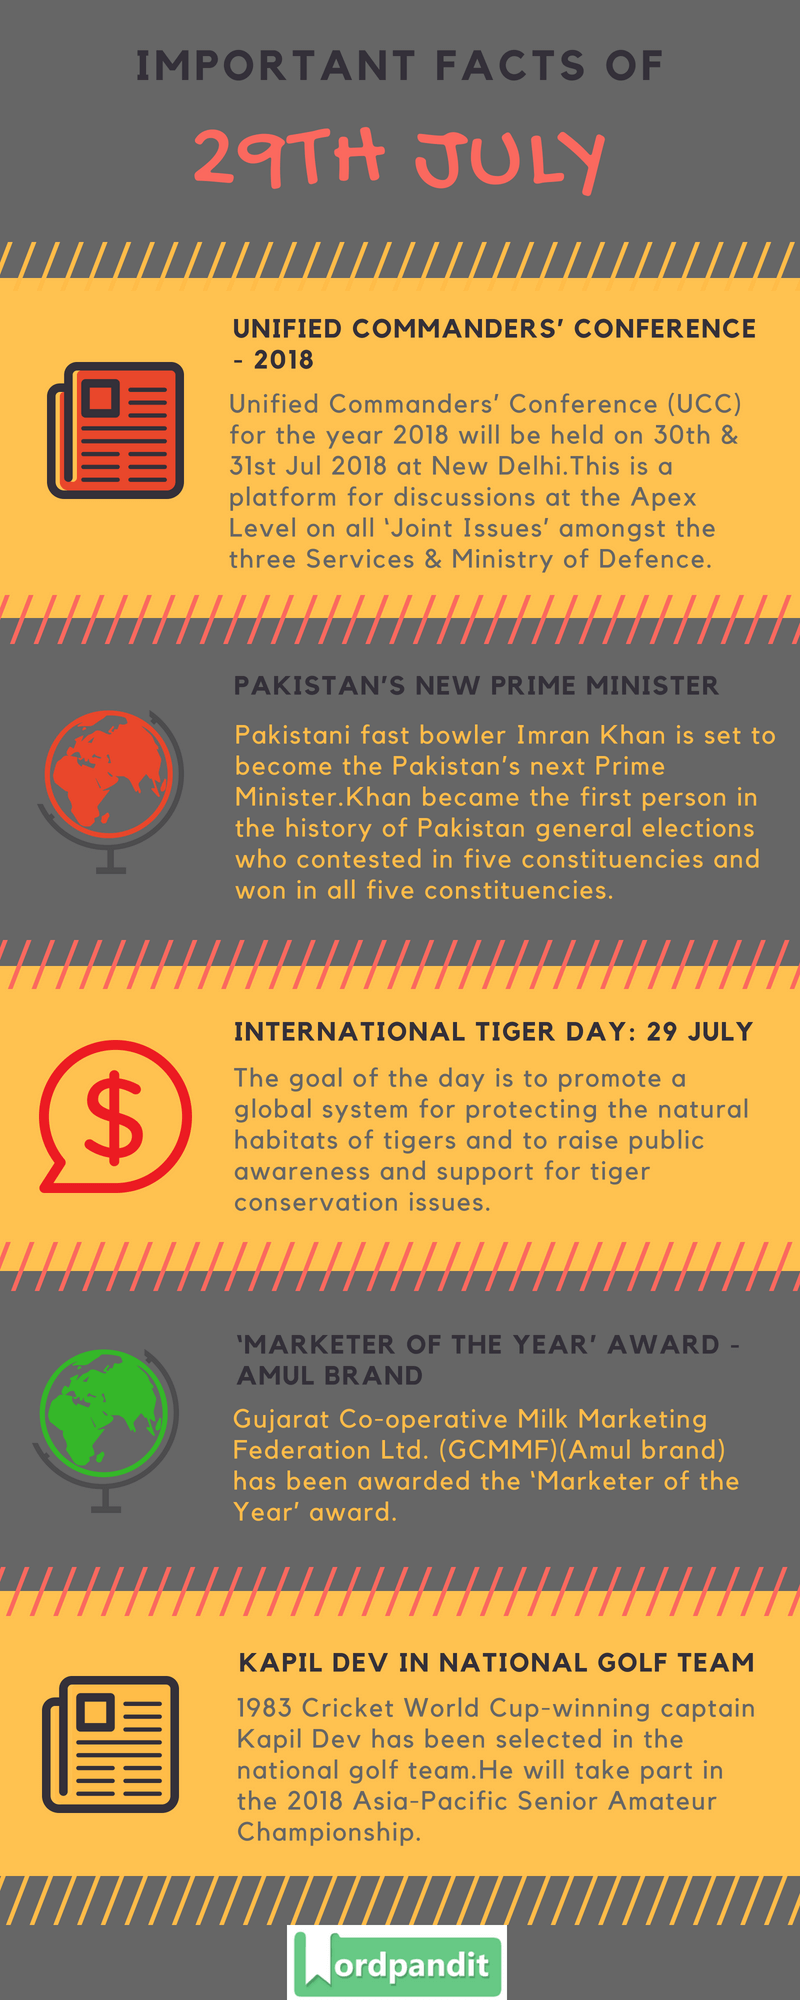 Daily Current Affairs 29 July 2018 Current Affairs Quiz July 29 2018 Current Affairs Infographic